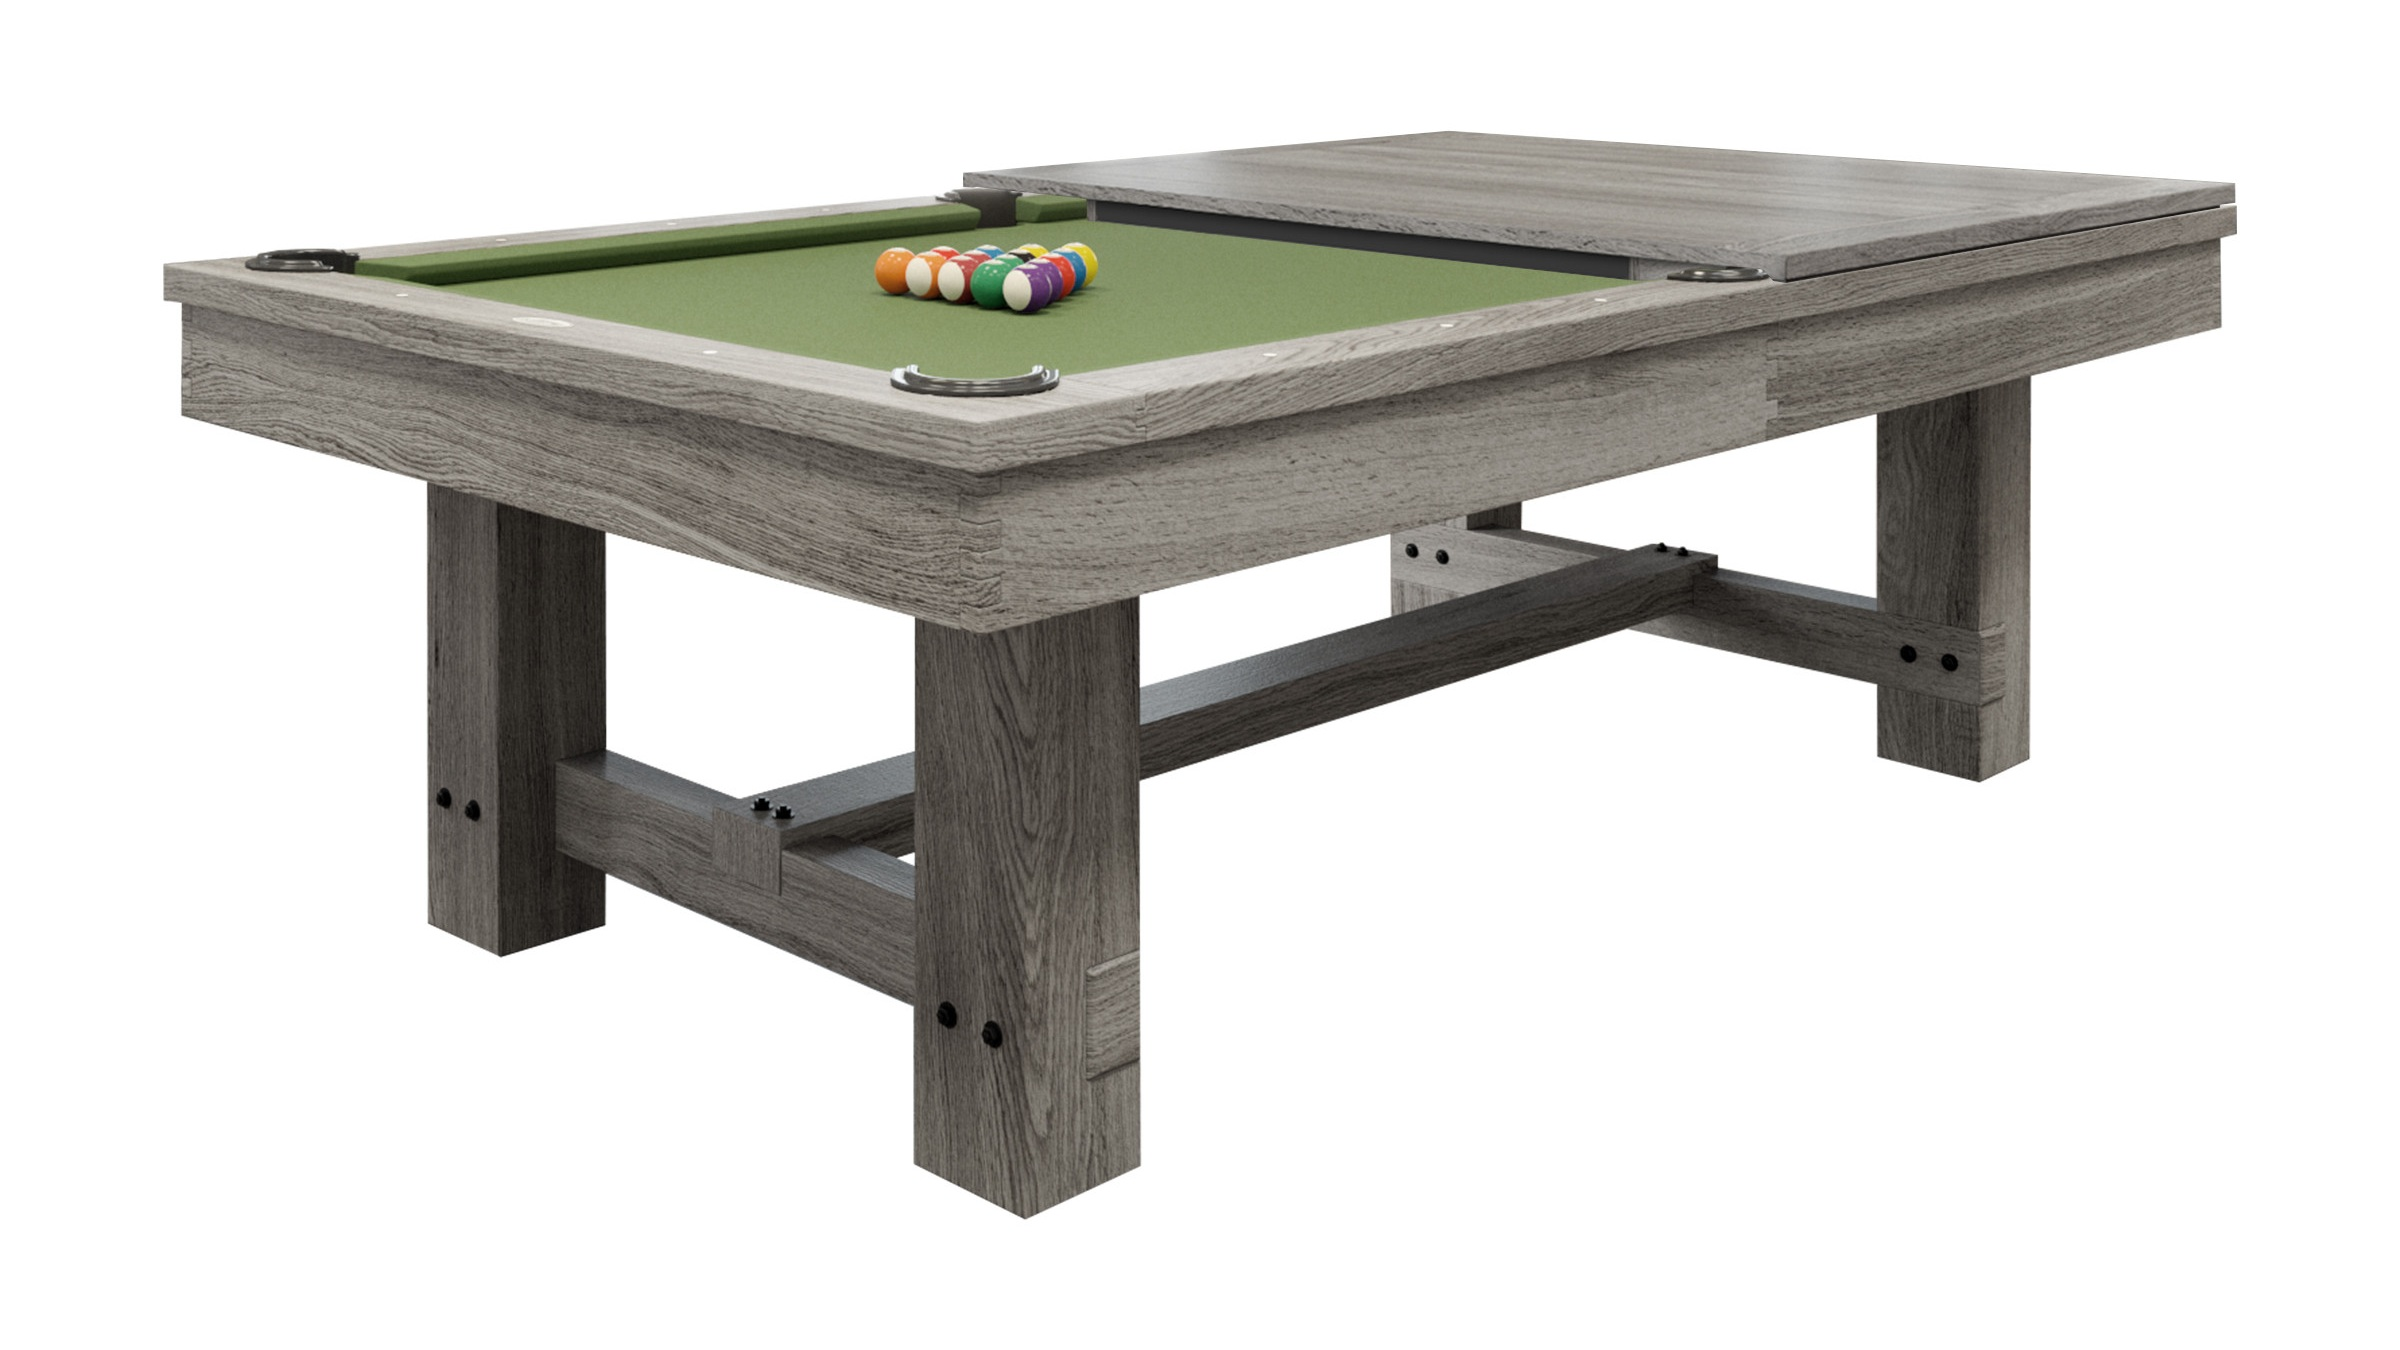 The Reno - Silver Mist with Dining Top